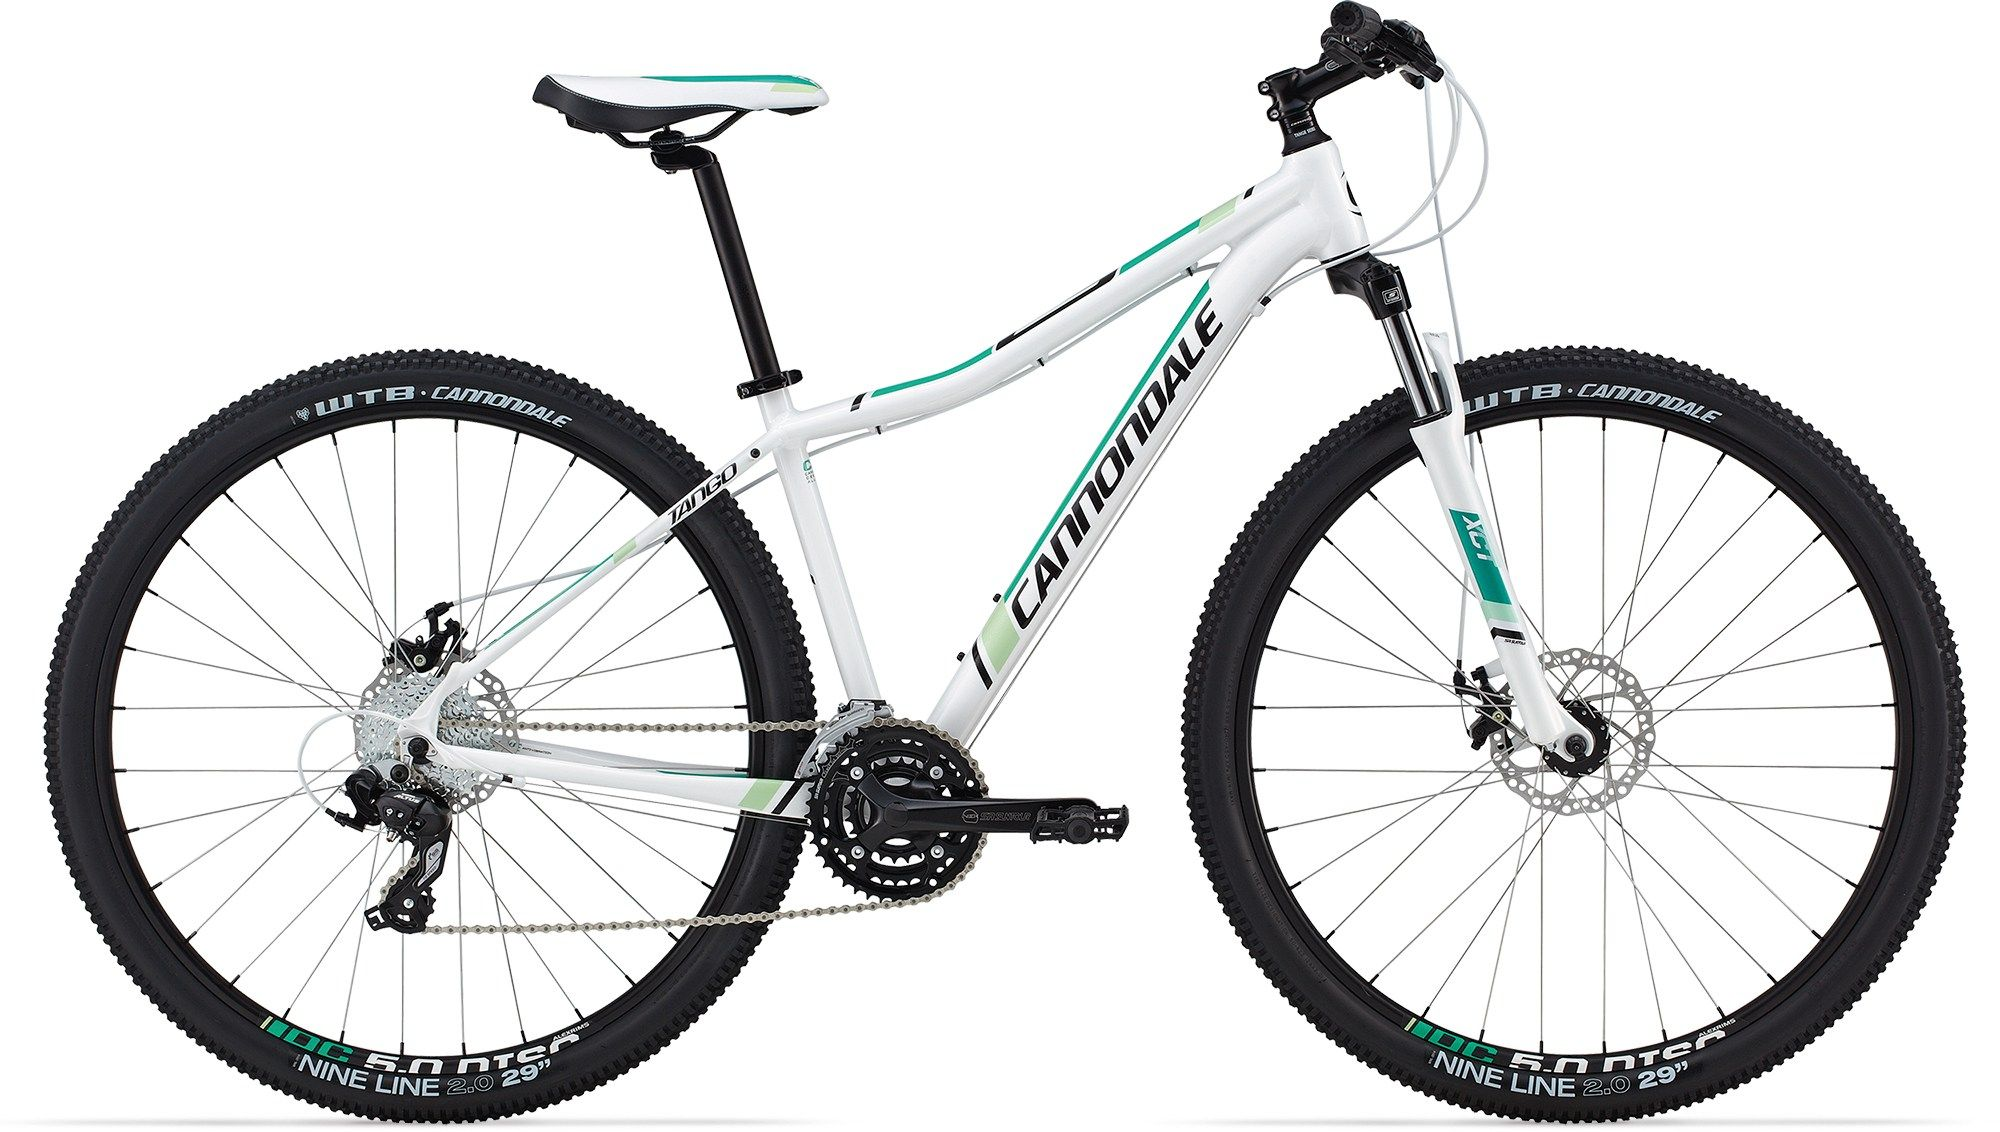 cac4d973f72 Cannondale Female Tango 29 7 Mountain Bike - Women s